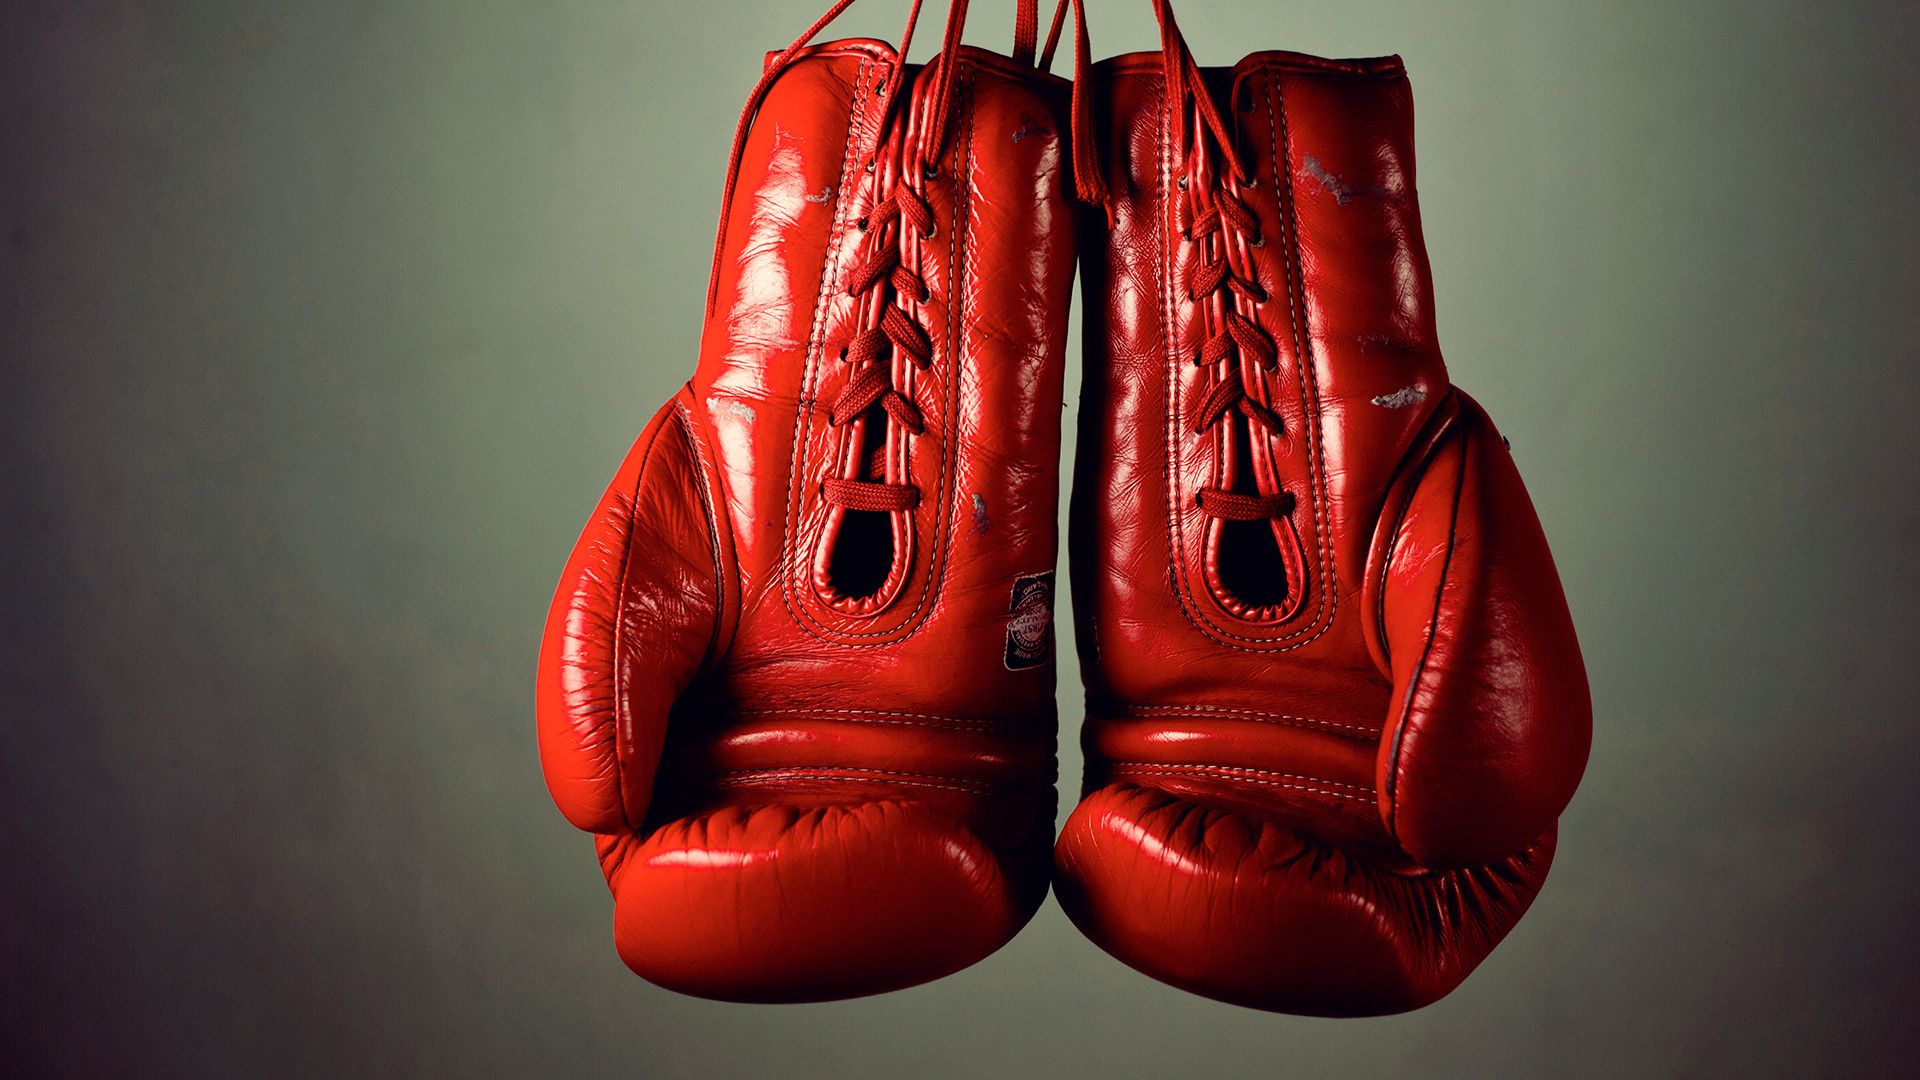 Boxing Gloves Wallpaper Iphone By 183